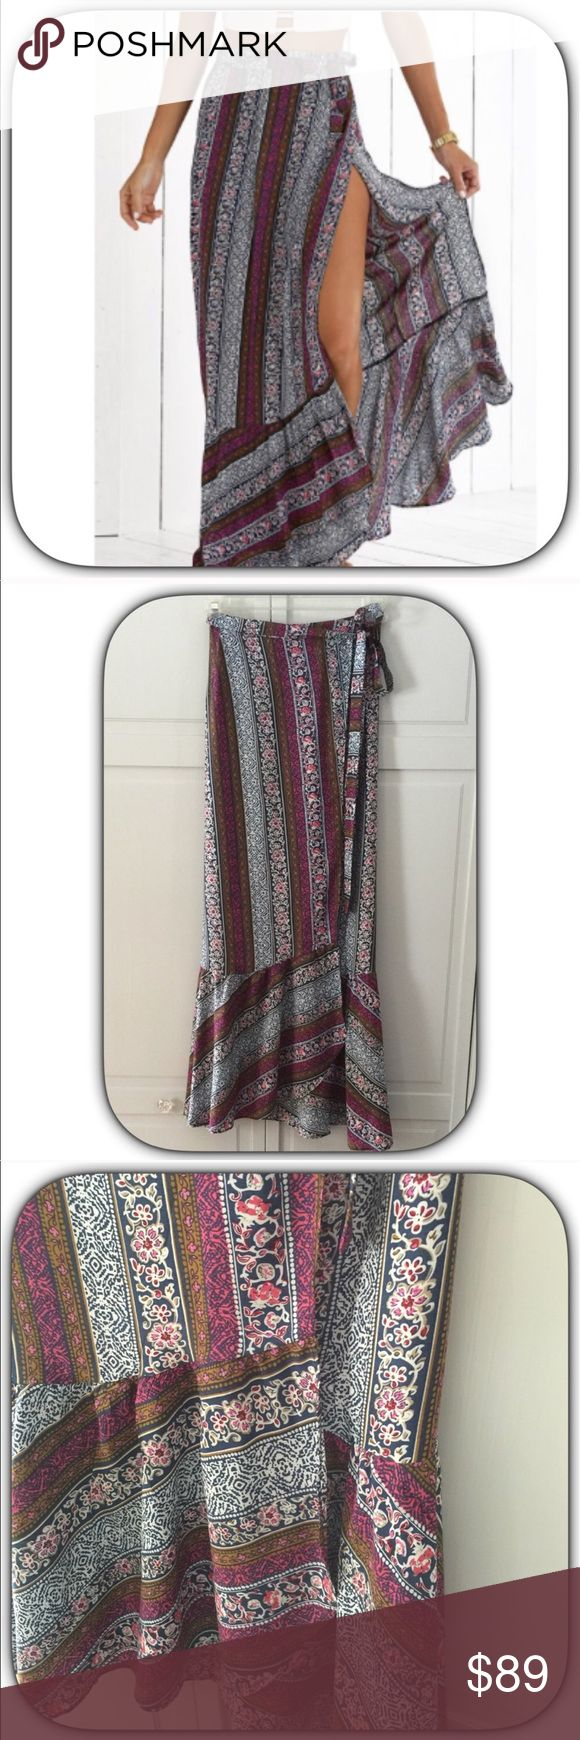 NWT Purple Boho Floral 60's Vibe Wrap Maxi Skirt JUST IN! Bring back those barefoot memories! This has a nice mix of purples, brown and white! It definitely has a 60's vibe to it! I love this skirt so much I had to buy one for myself! It also has a ruffle on the bottom to add some flare!                        Medium Length 41                                                         Large Length 42                                                                Waist Adjustable Boutique Skirts…